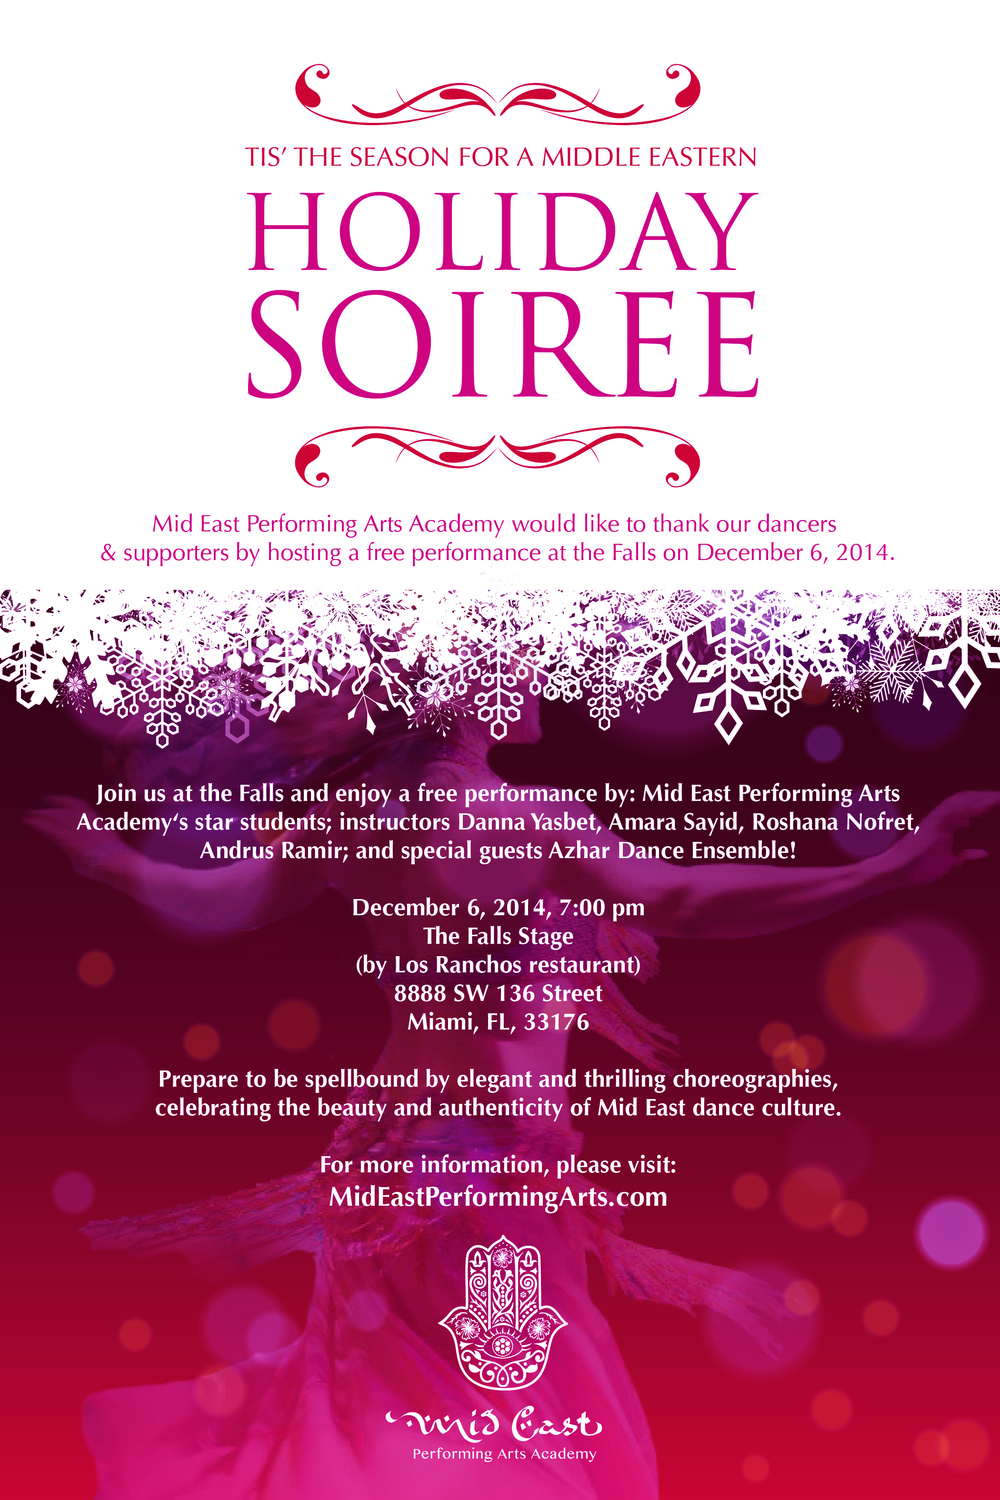 HolidaySoiree_Flyer2014.jpg